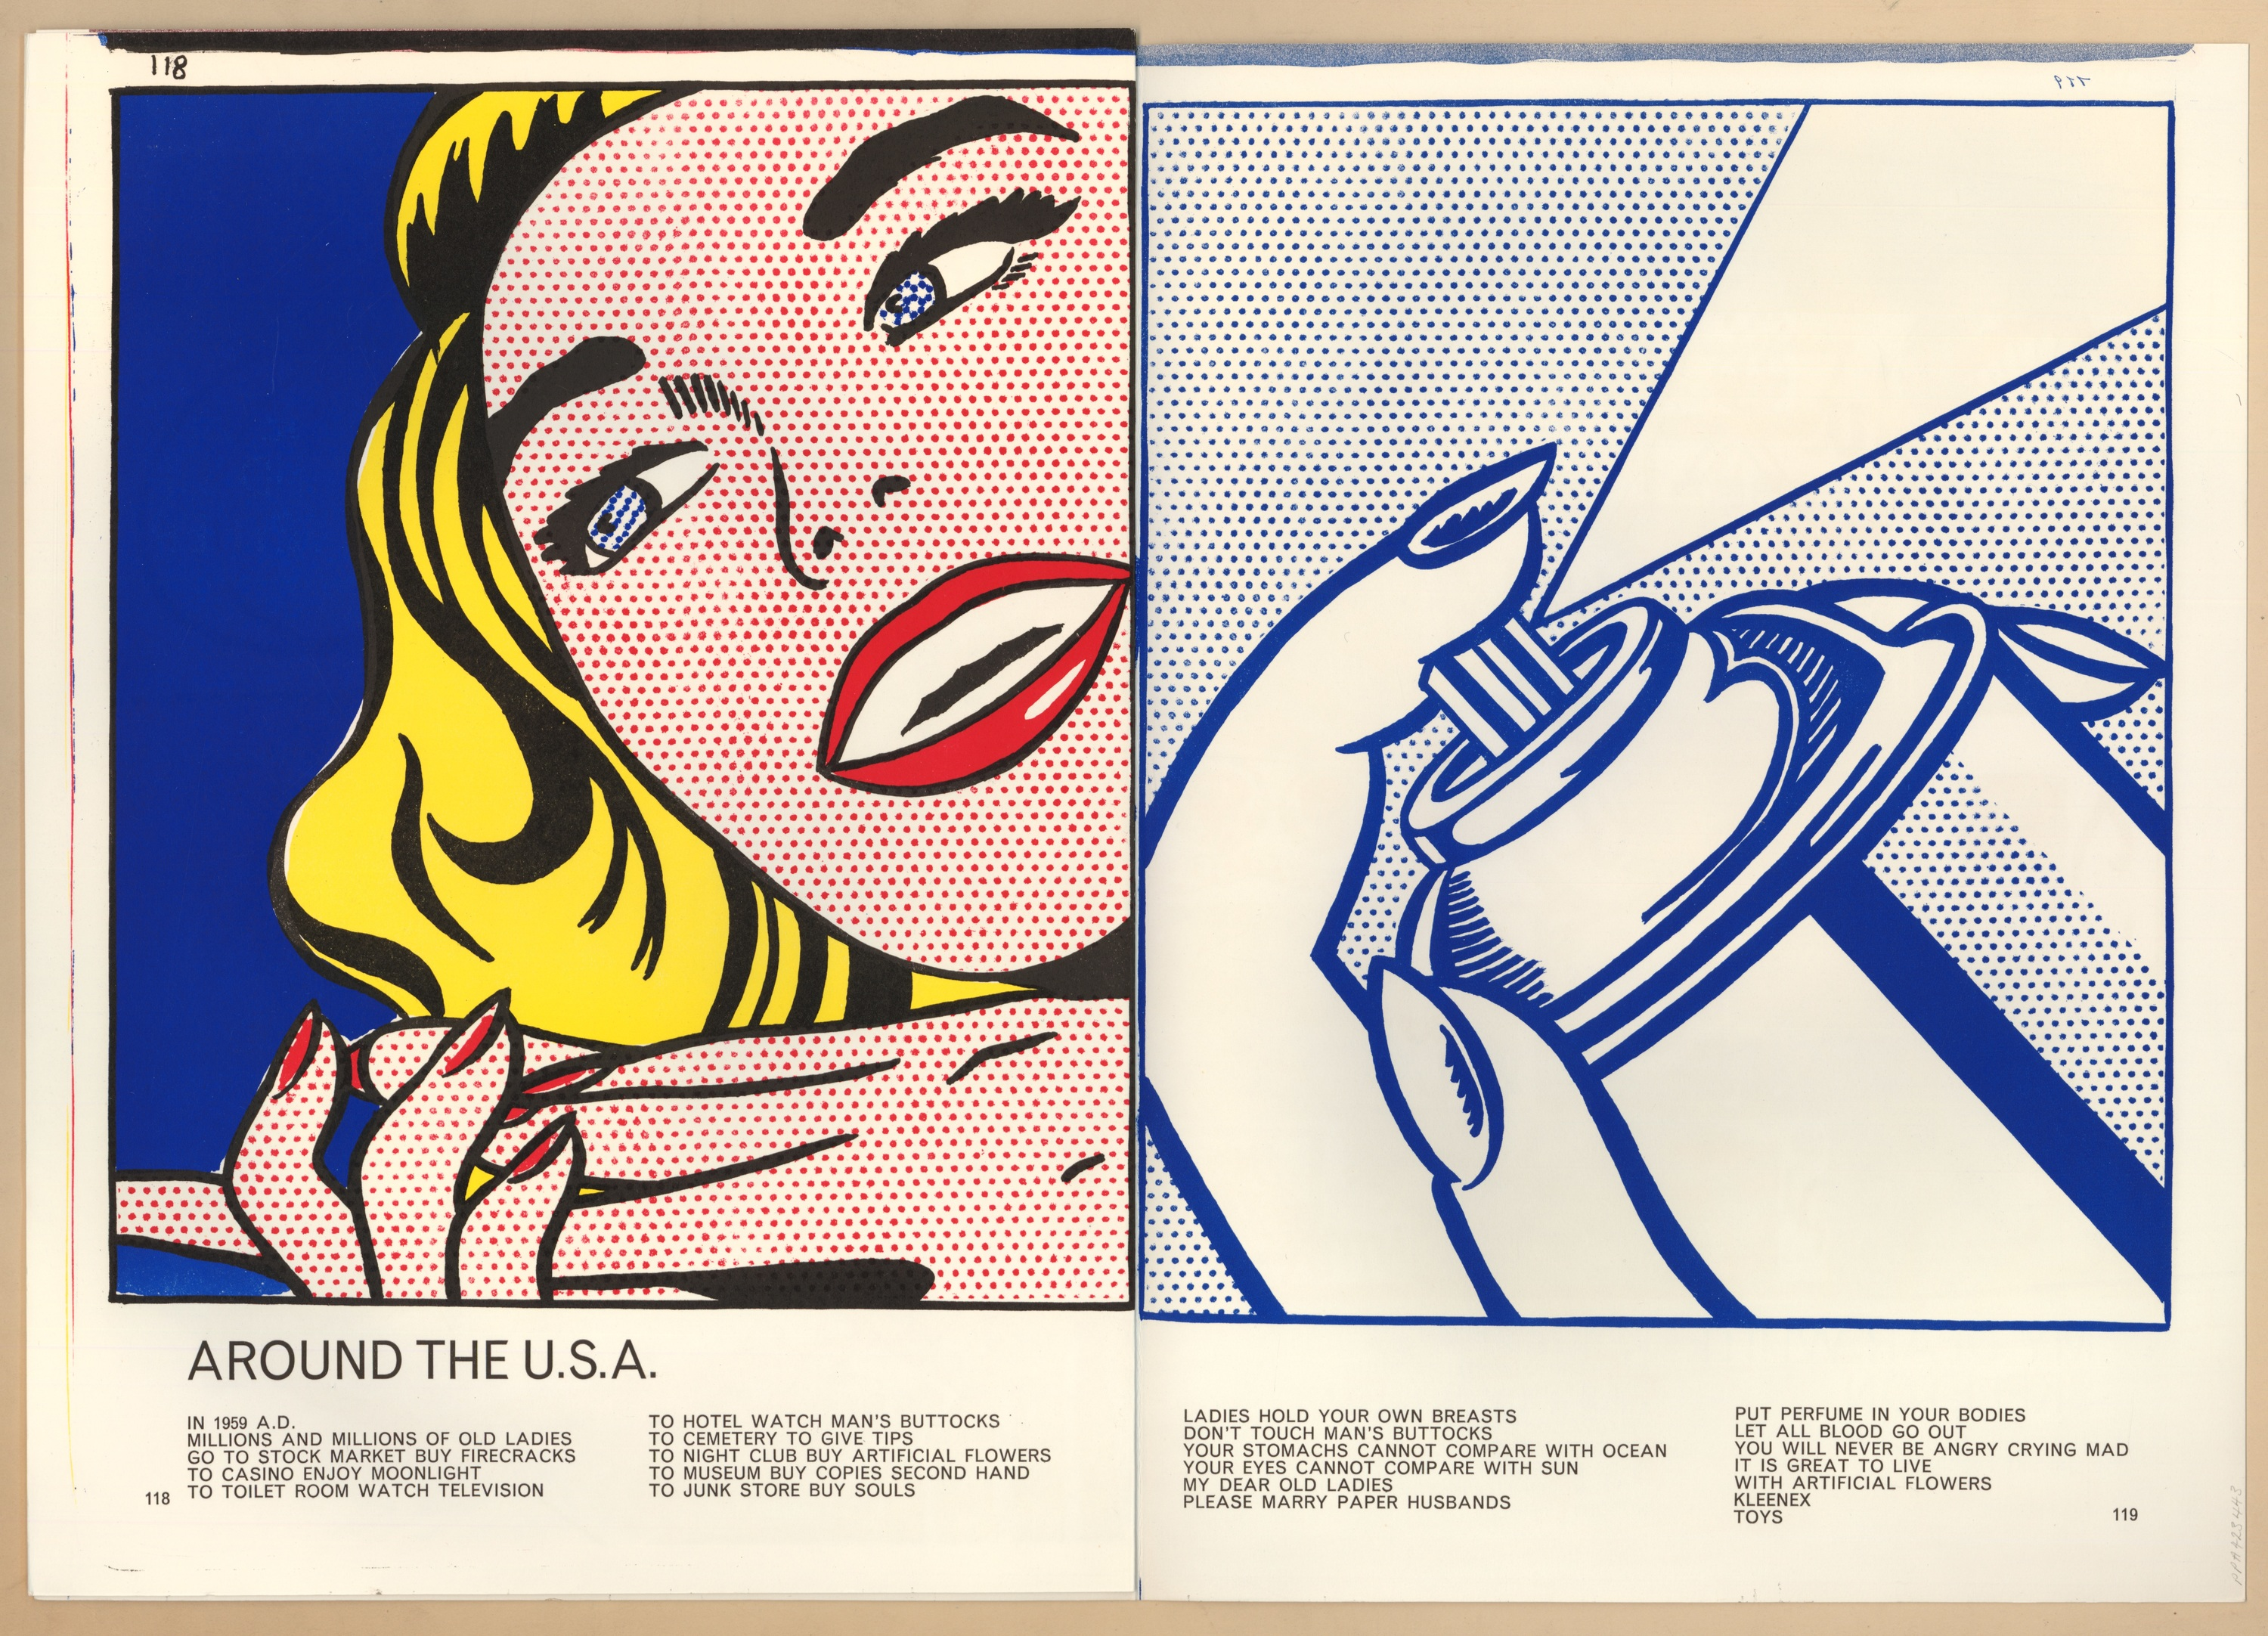 Girl/Spray Can from Walasse Ting. 1 ¢ Life, 1963, de Roy Lichtenstein